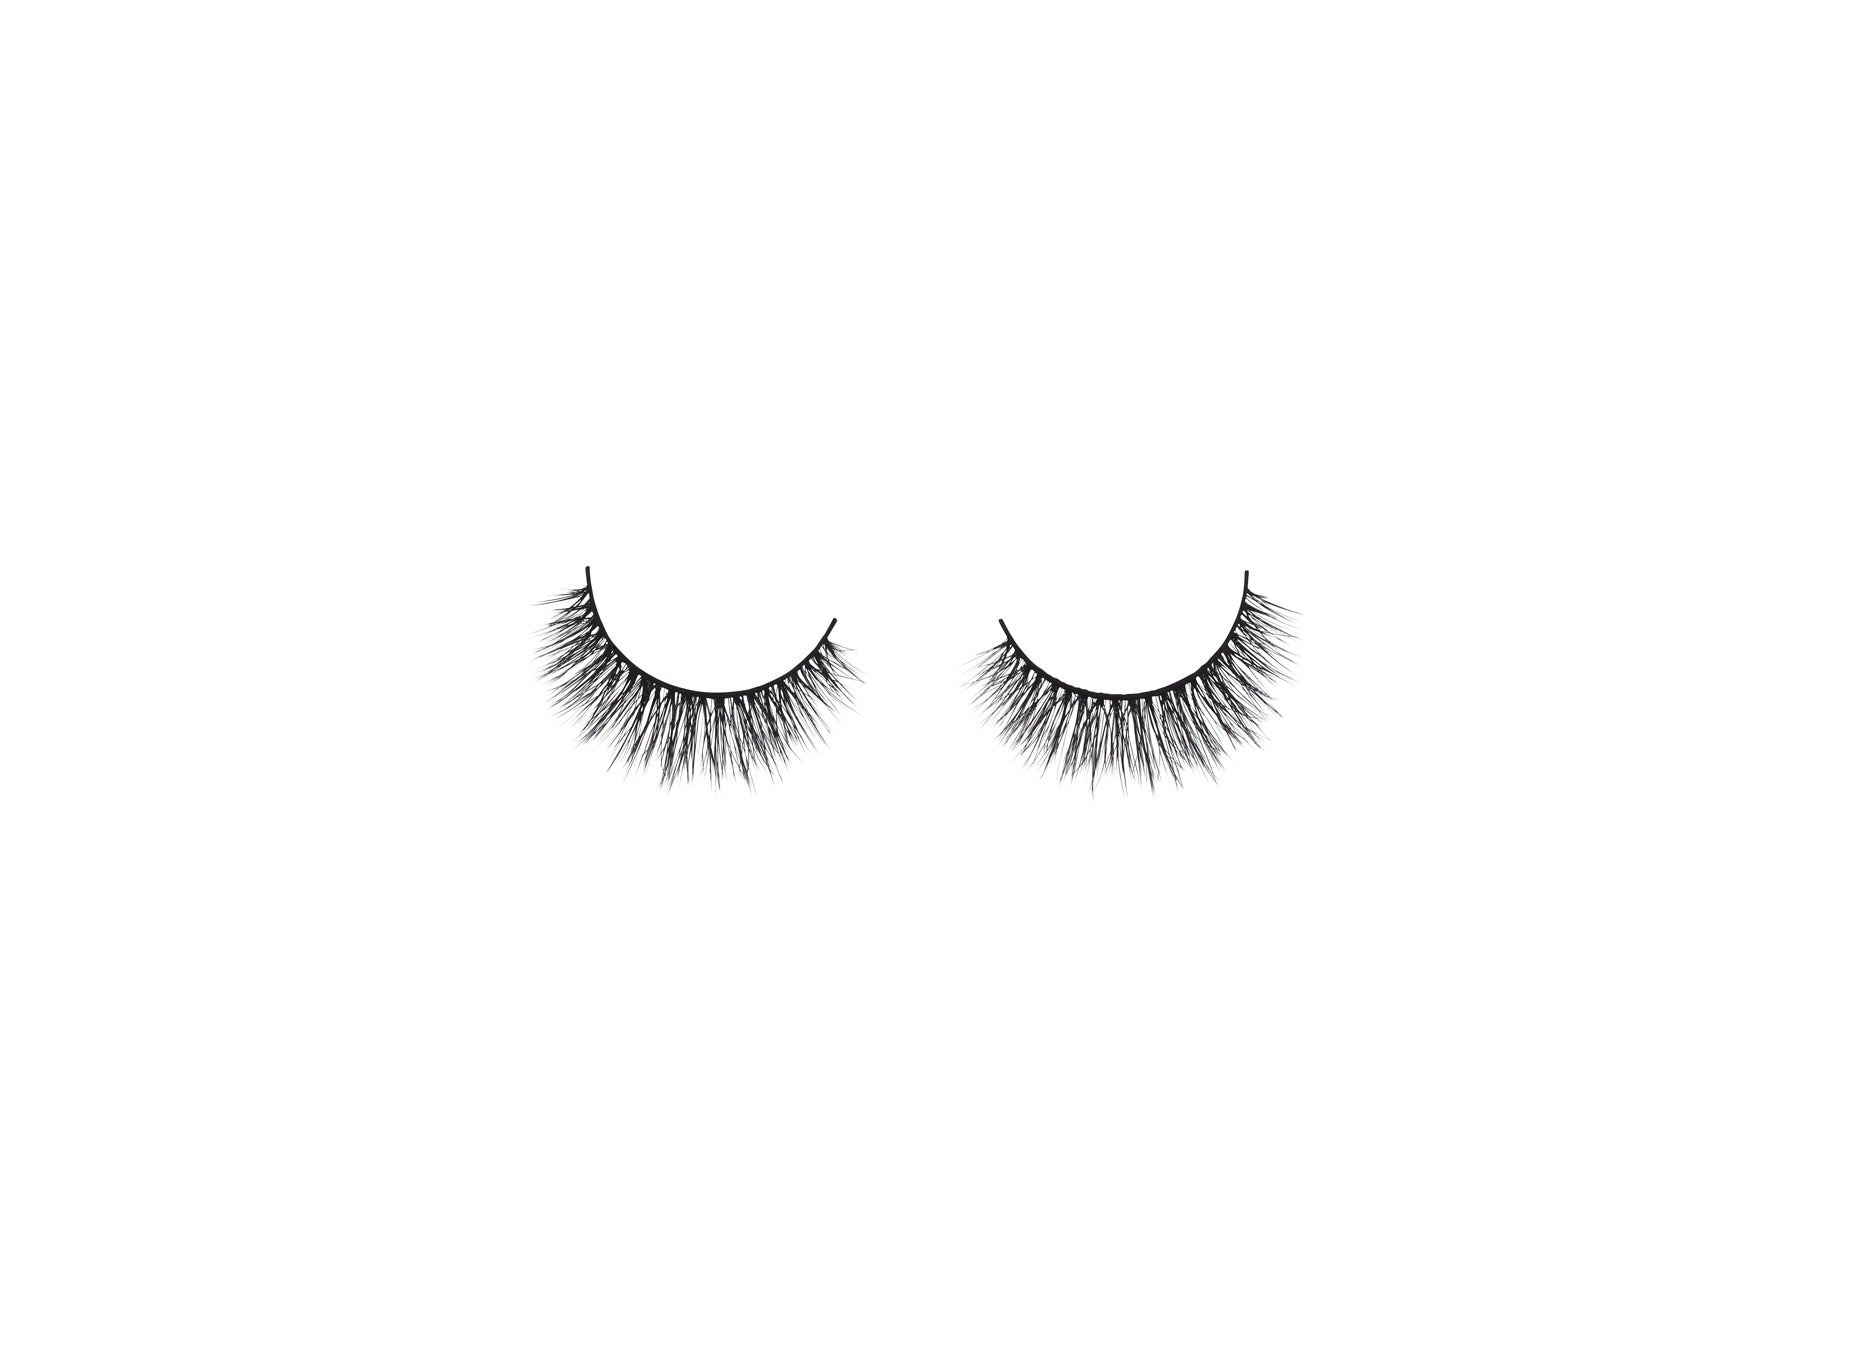 thumbnail - medium volume lashes from lash star beauty